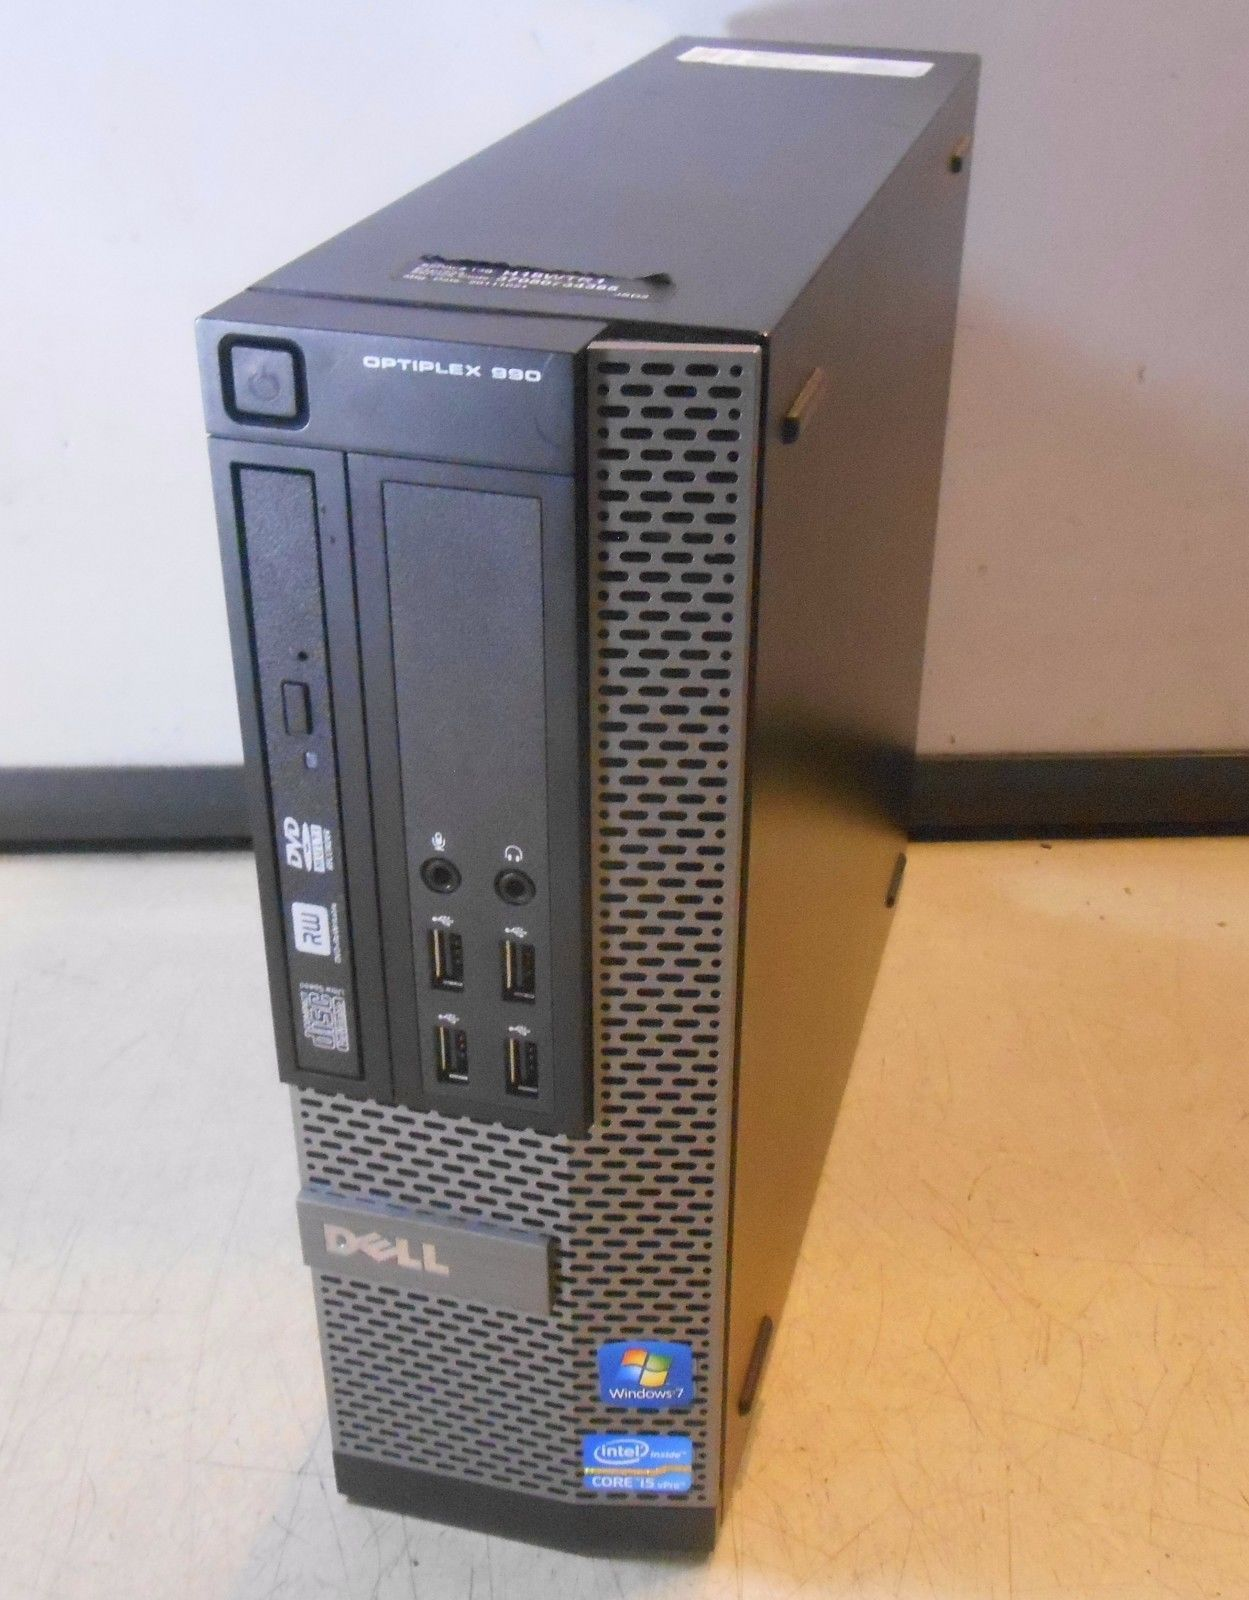 Dell OptiPlex 990 Mini Tower 4GB, 160GB with Optical Drive - Slightly Used